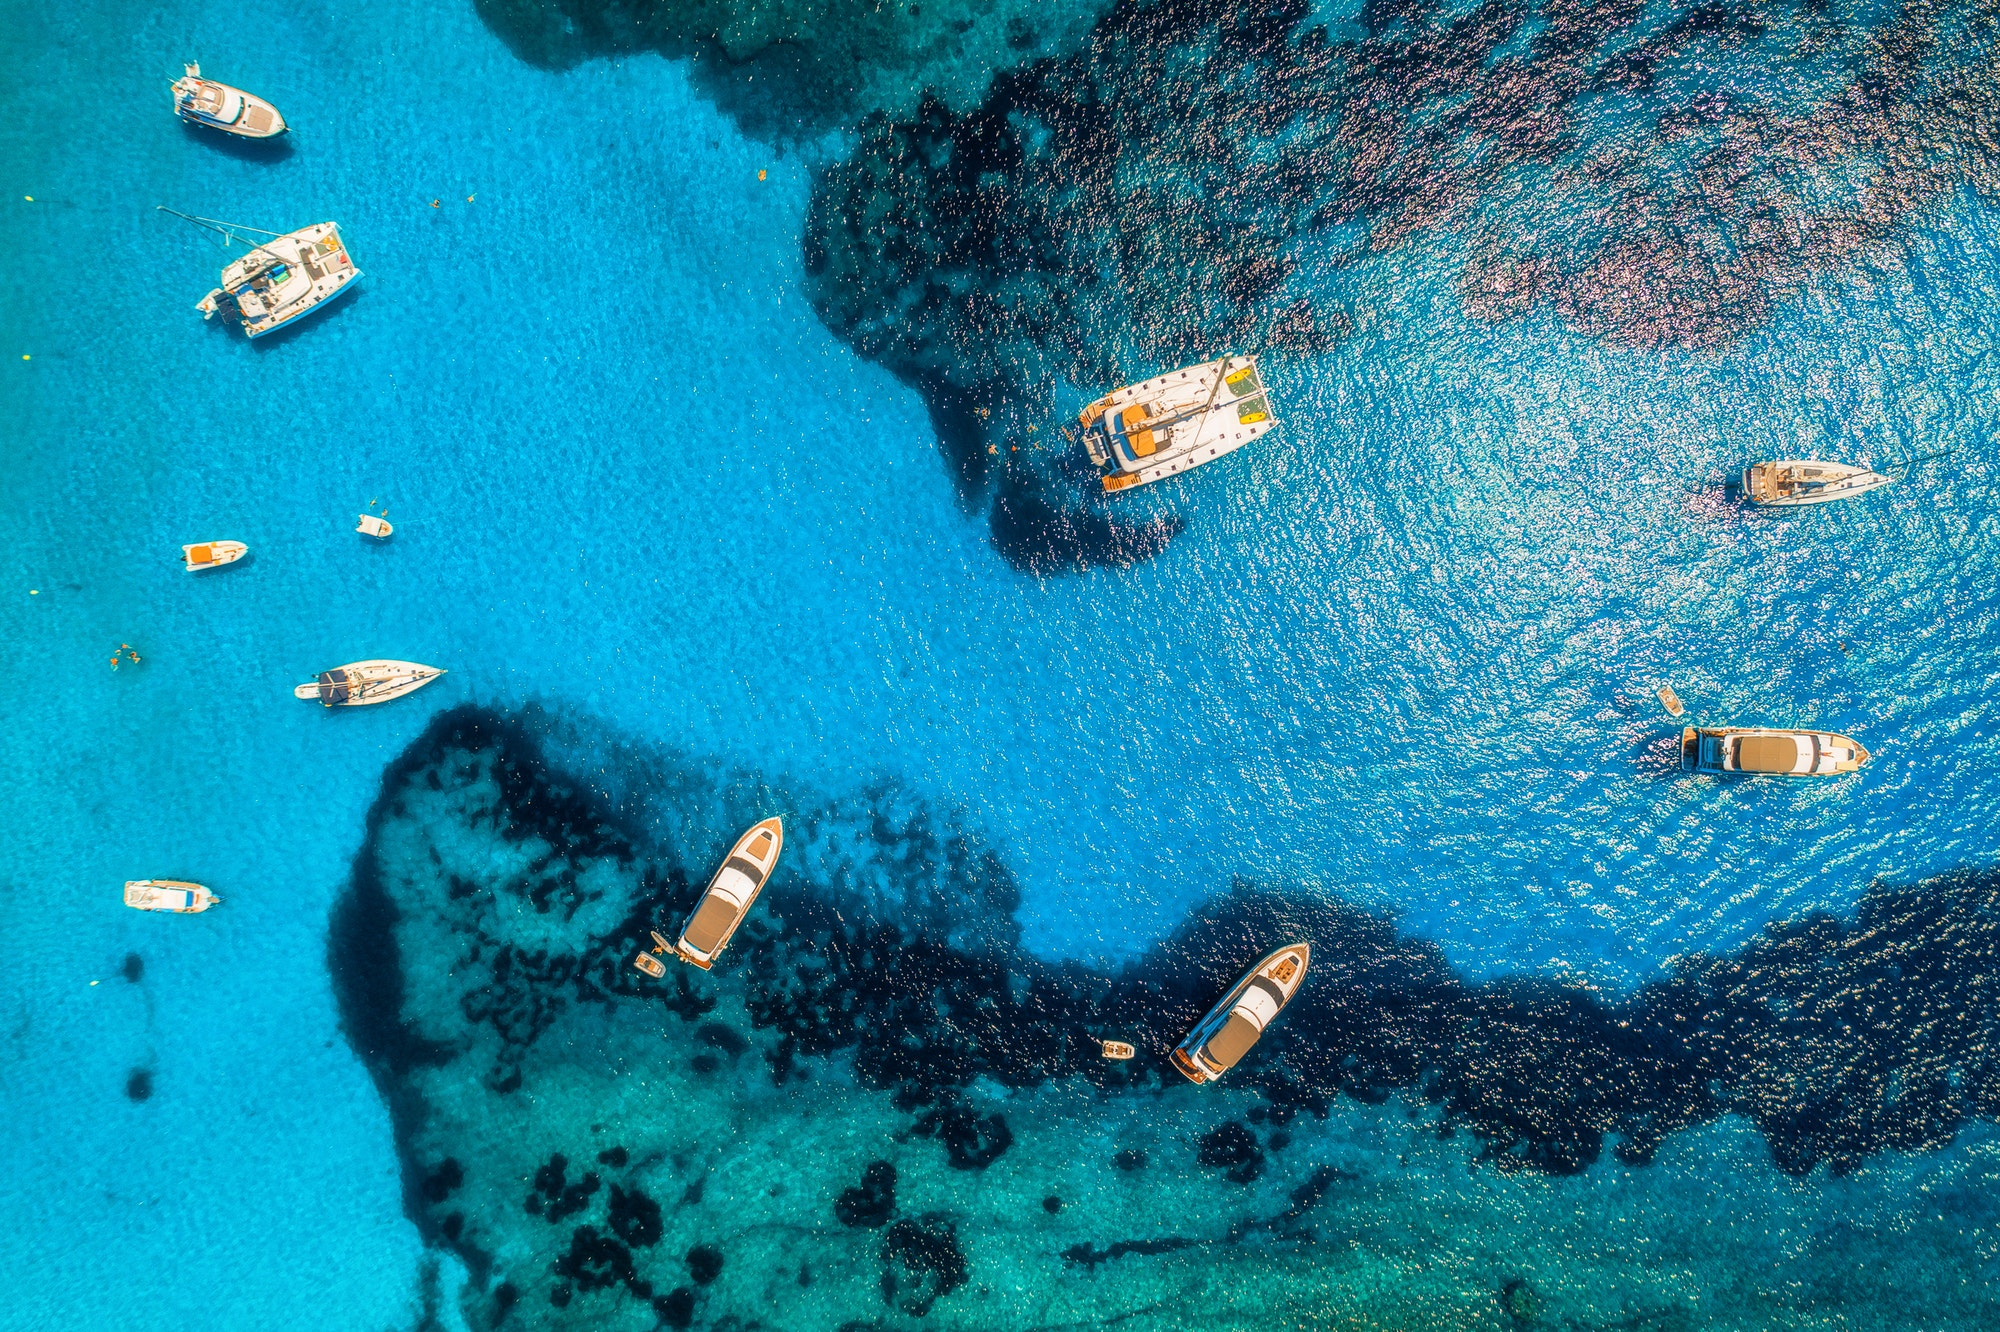 Aerial view of boats and luxury yachts in transparent blue sea